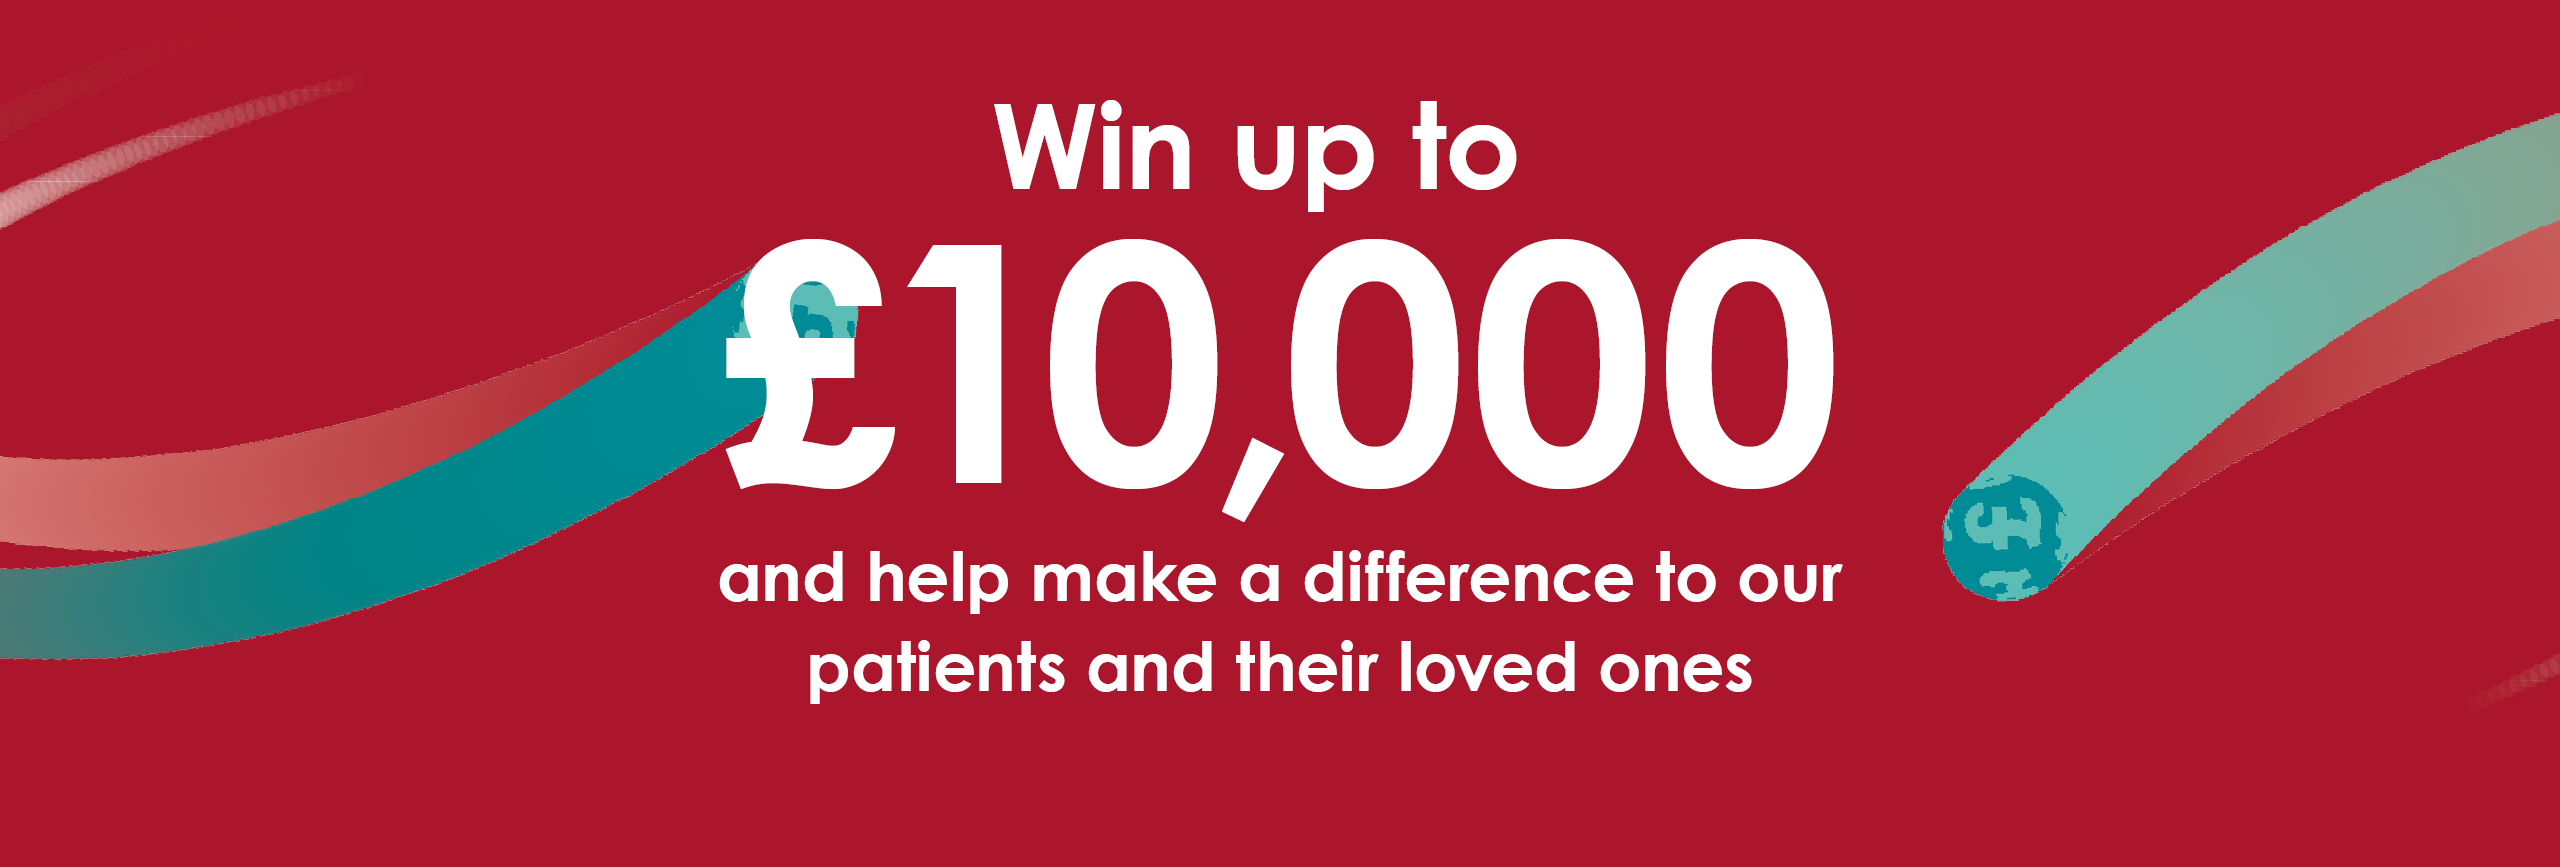 The Myton Hospices - Join our lottery today and you could win £10,000